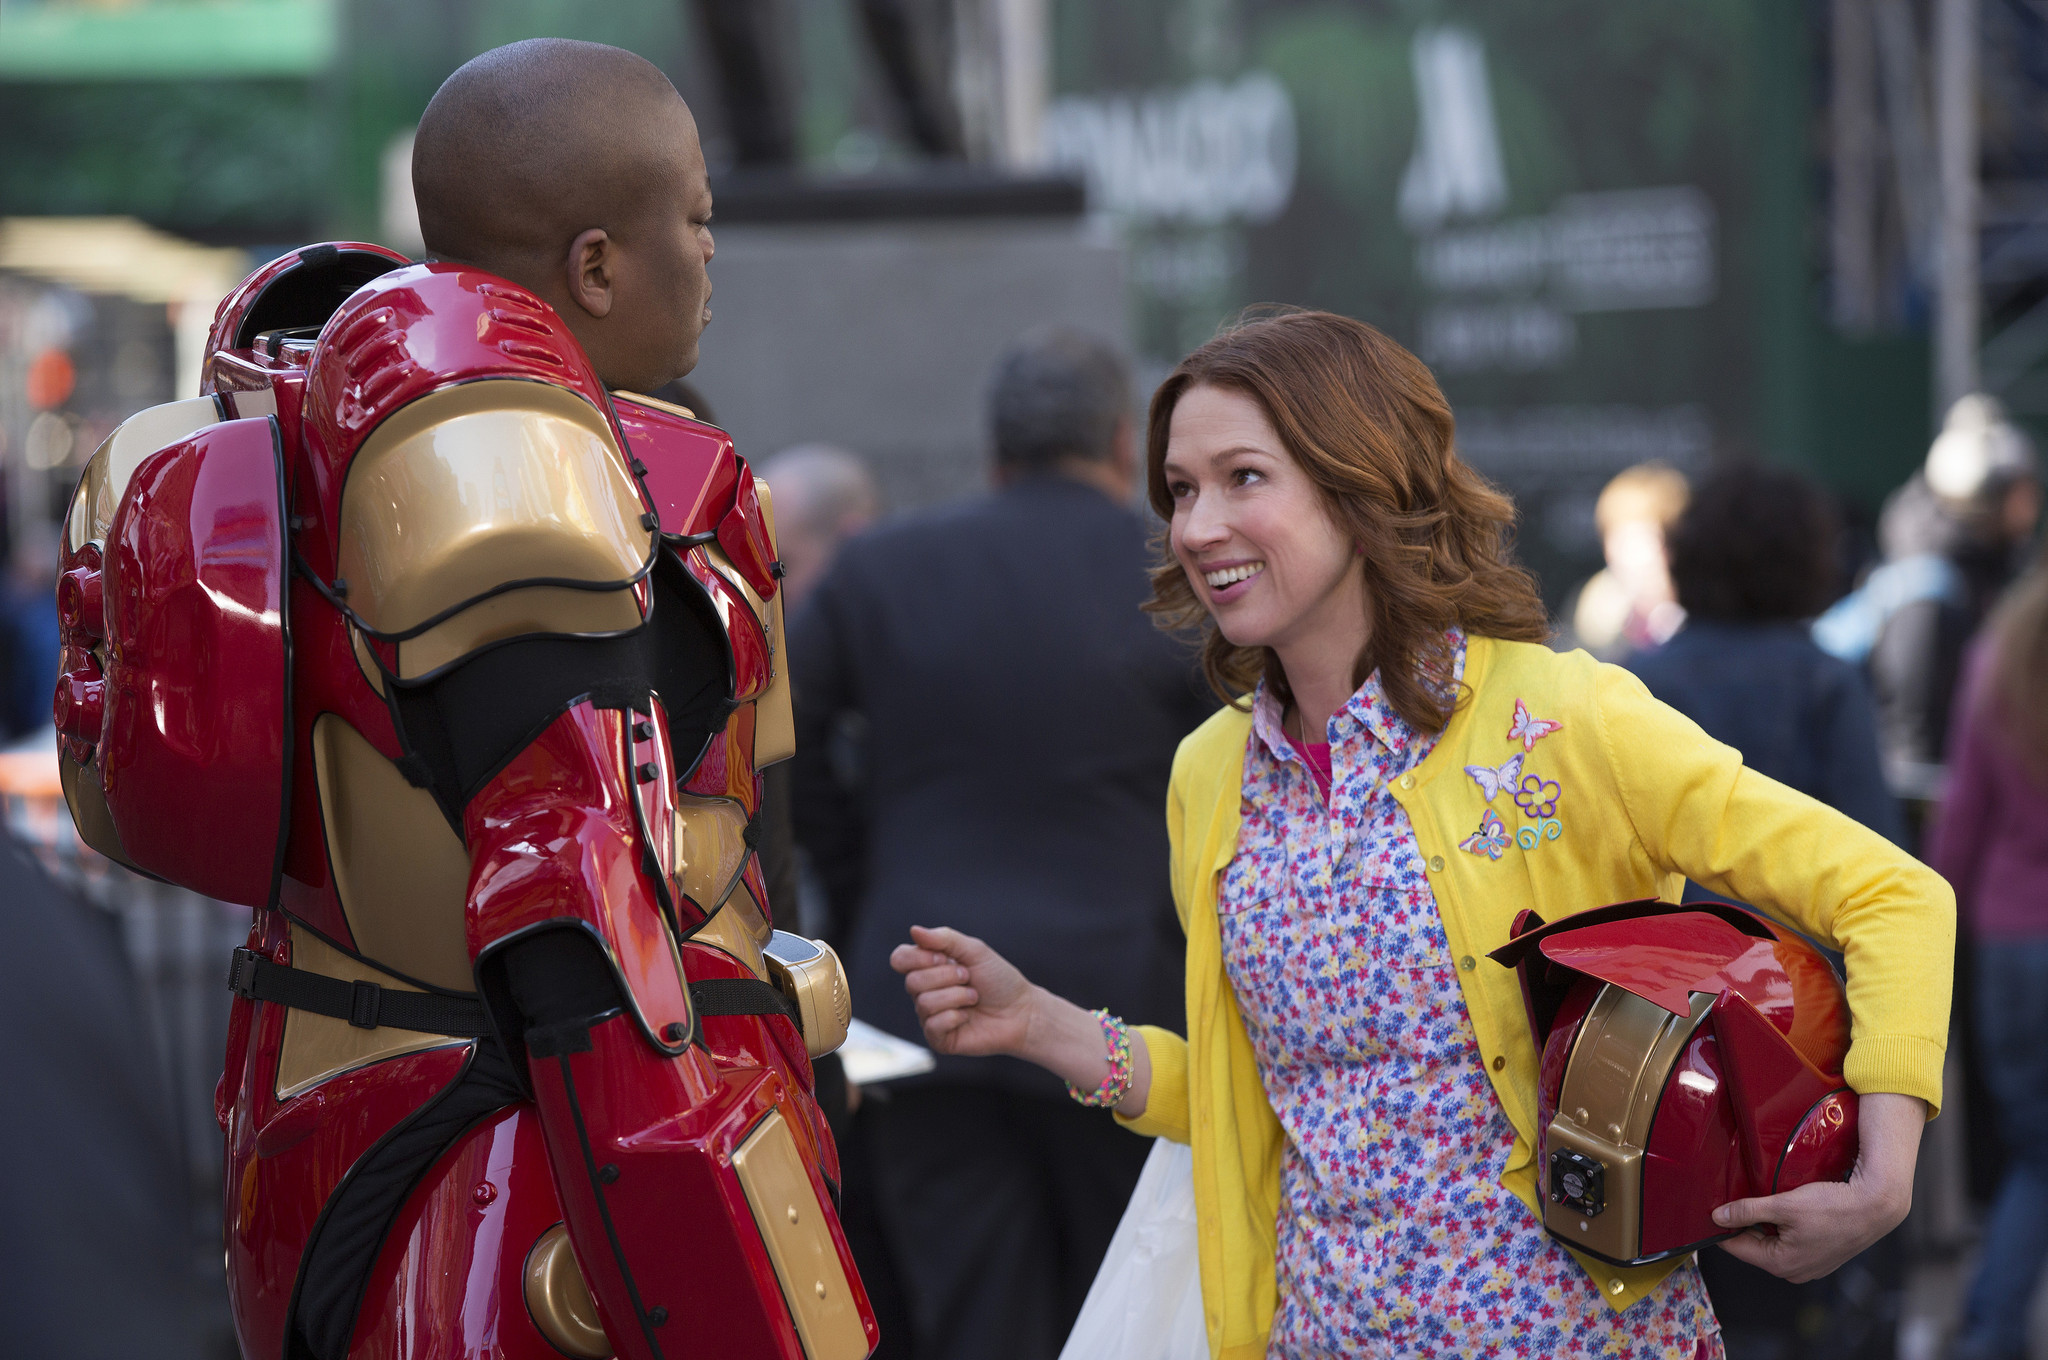 'Kimmy Schmidt' composer Jeff Richmond on the show's viral-friendly songs